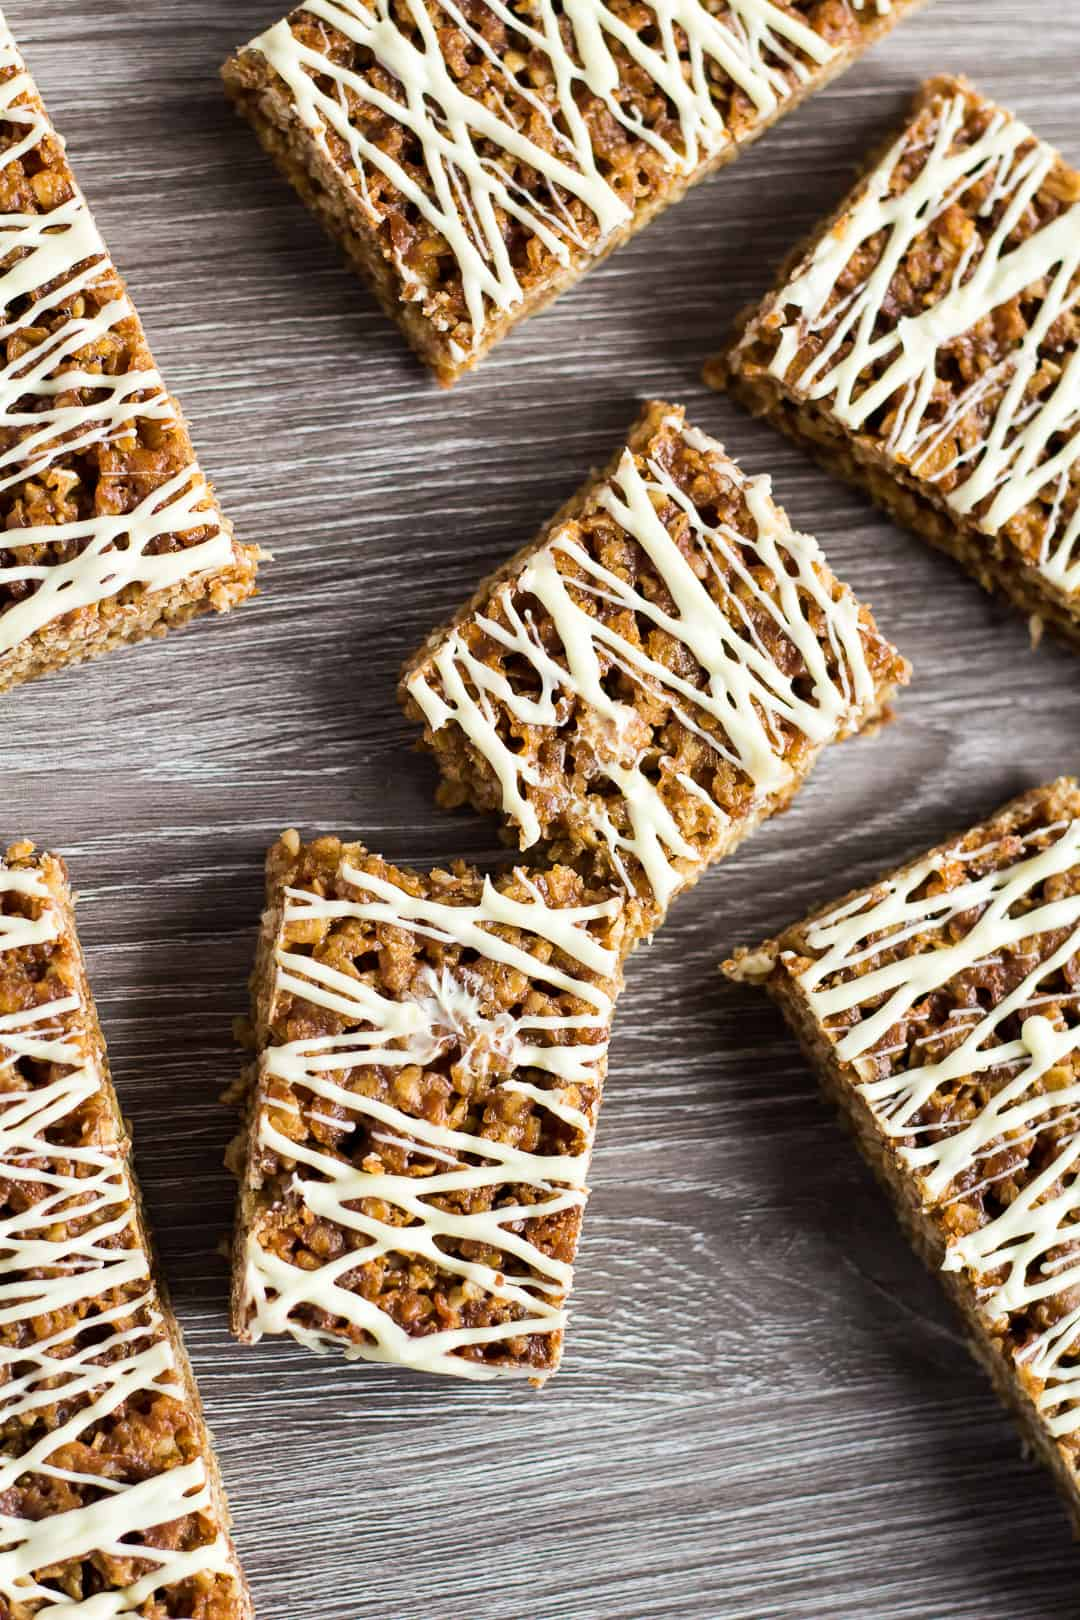 An overhead shot of Hot Cross Bun Spiced Flapjacks drizzled with white chocolate with one flapjack broke in half.